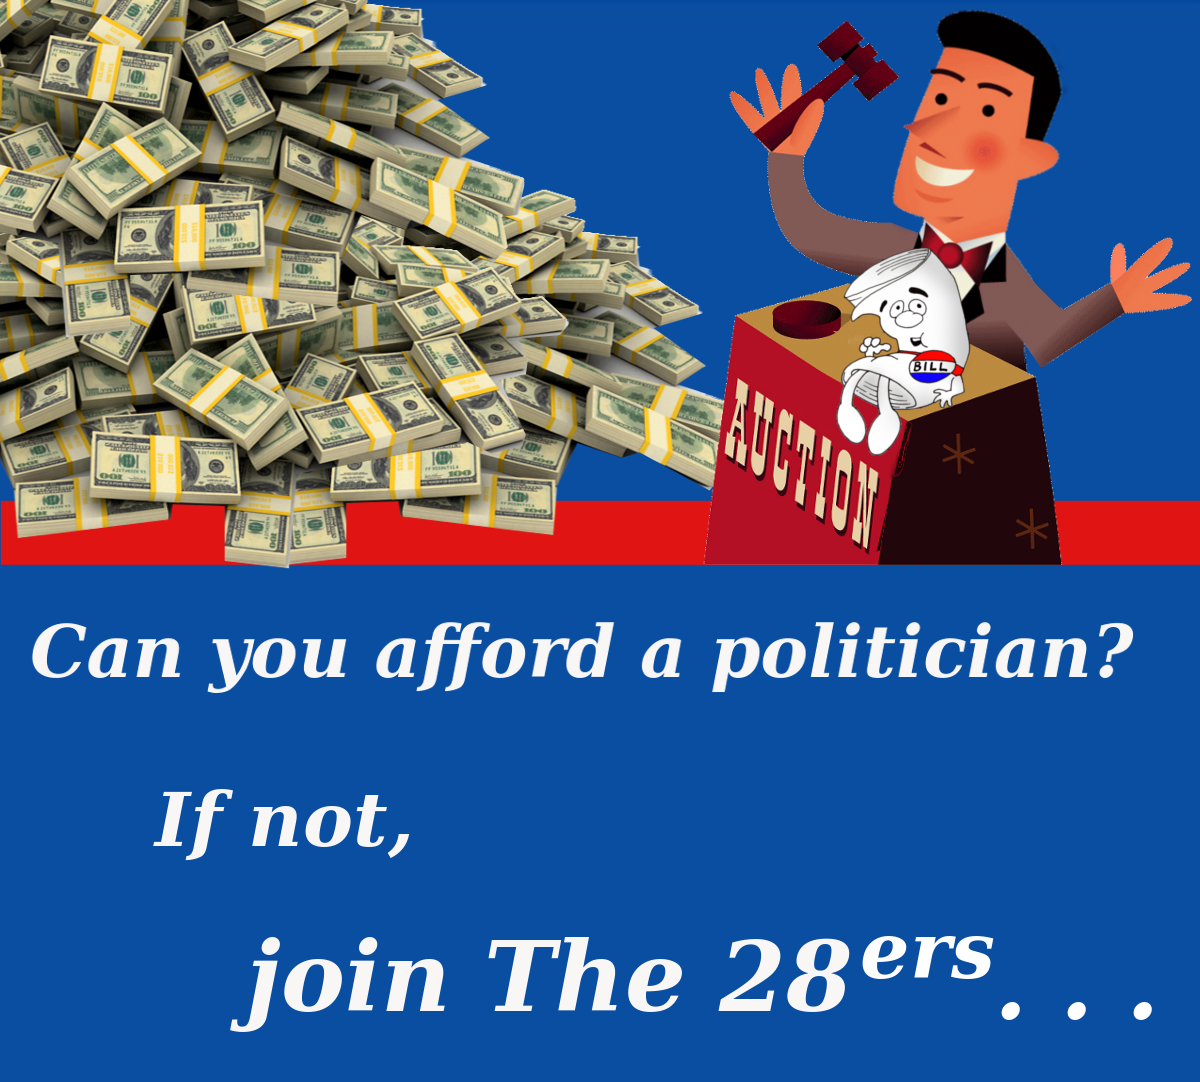 can you afford a politician?